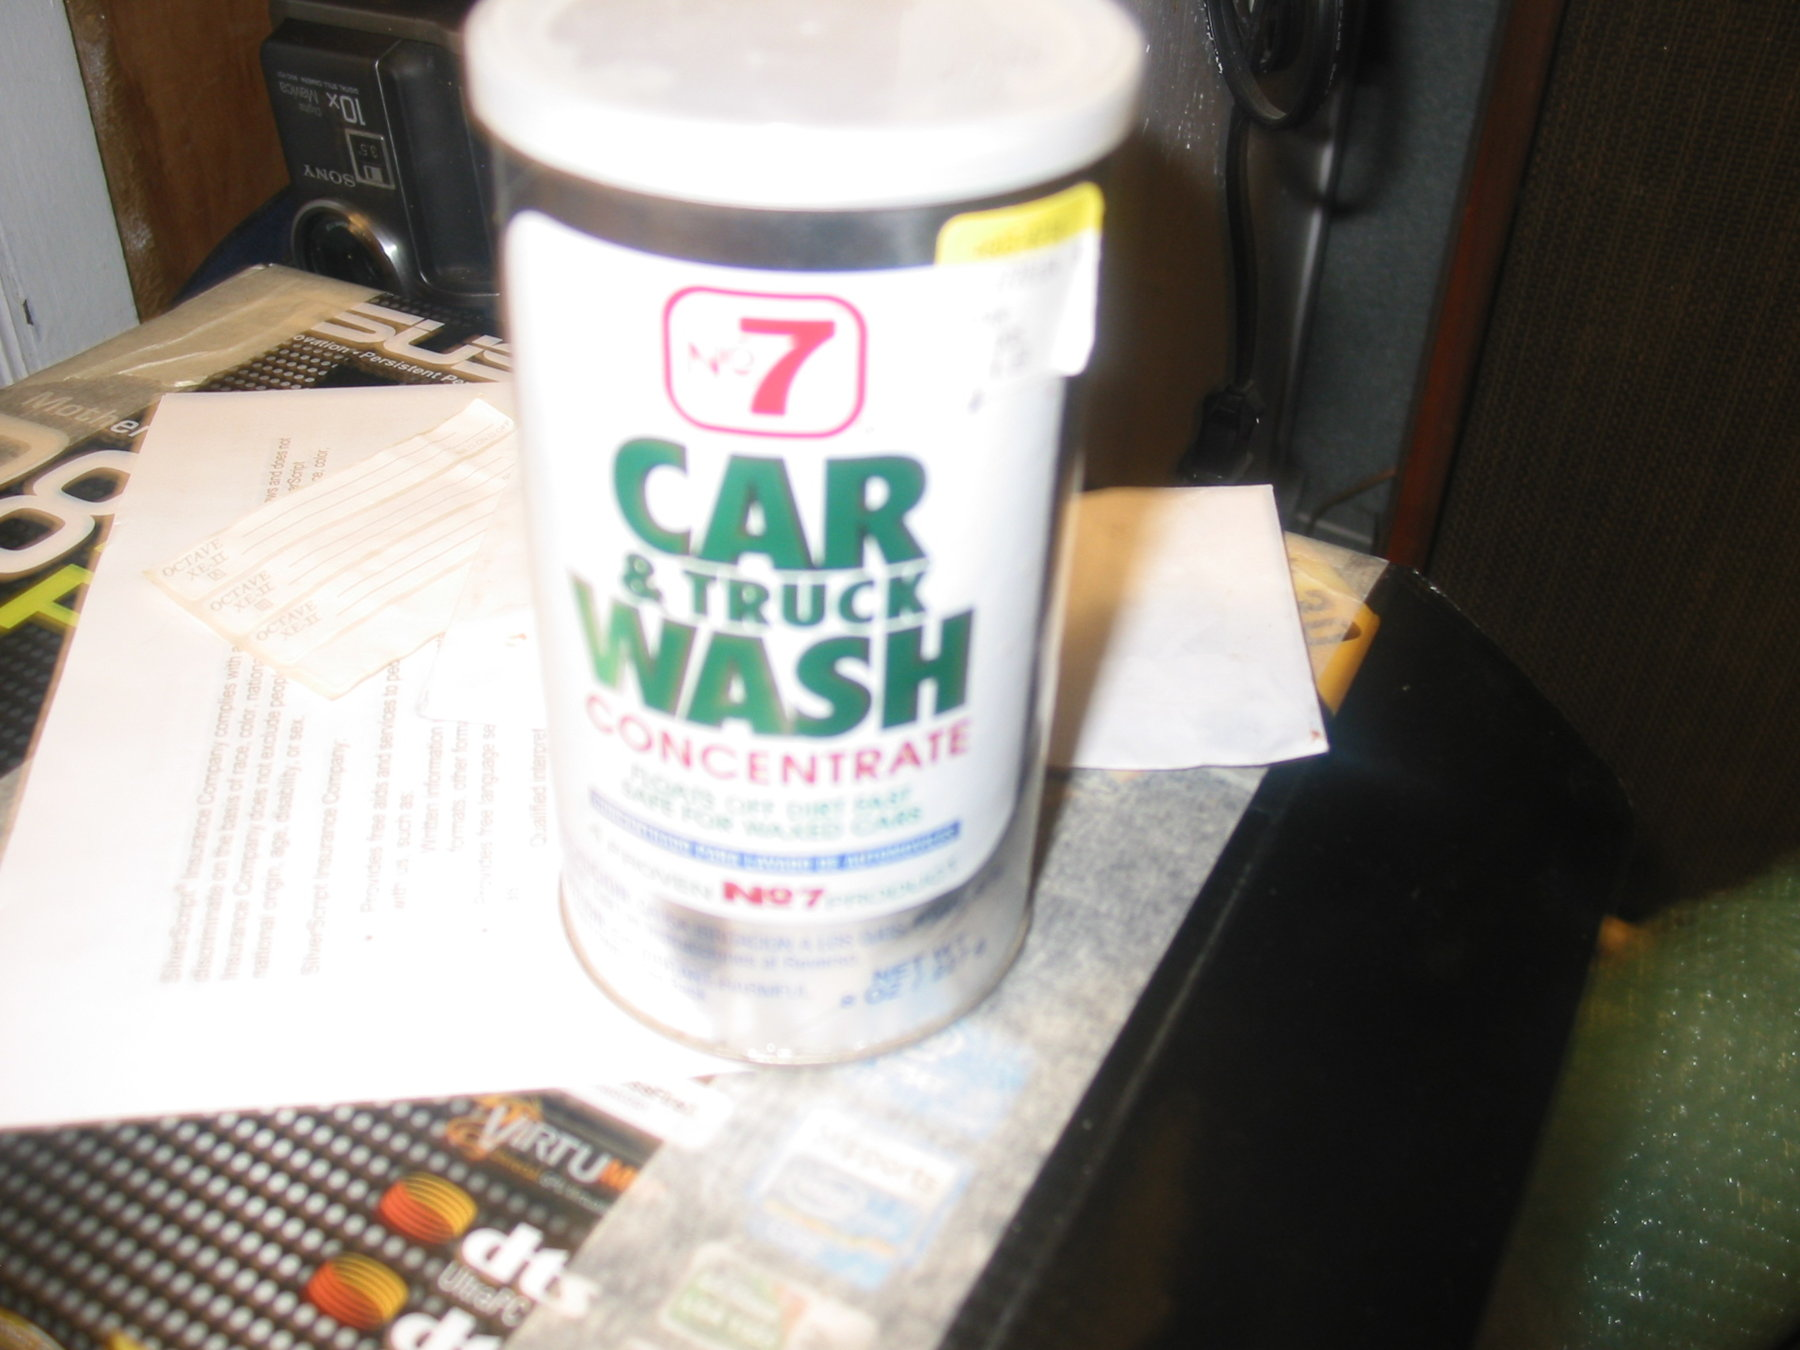 No 7 car wash 001.JPG